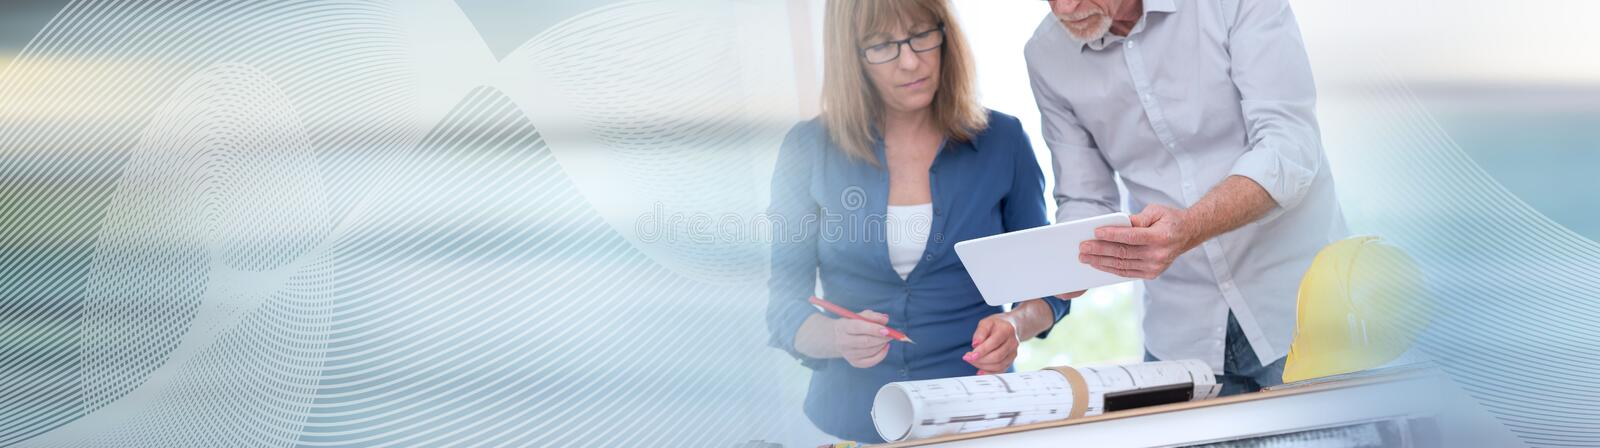 Architects working on plans; panoramic banner royalty free stock images